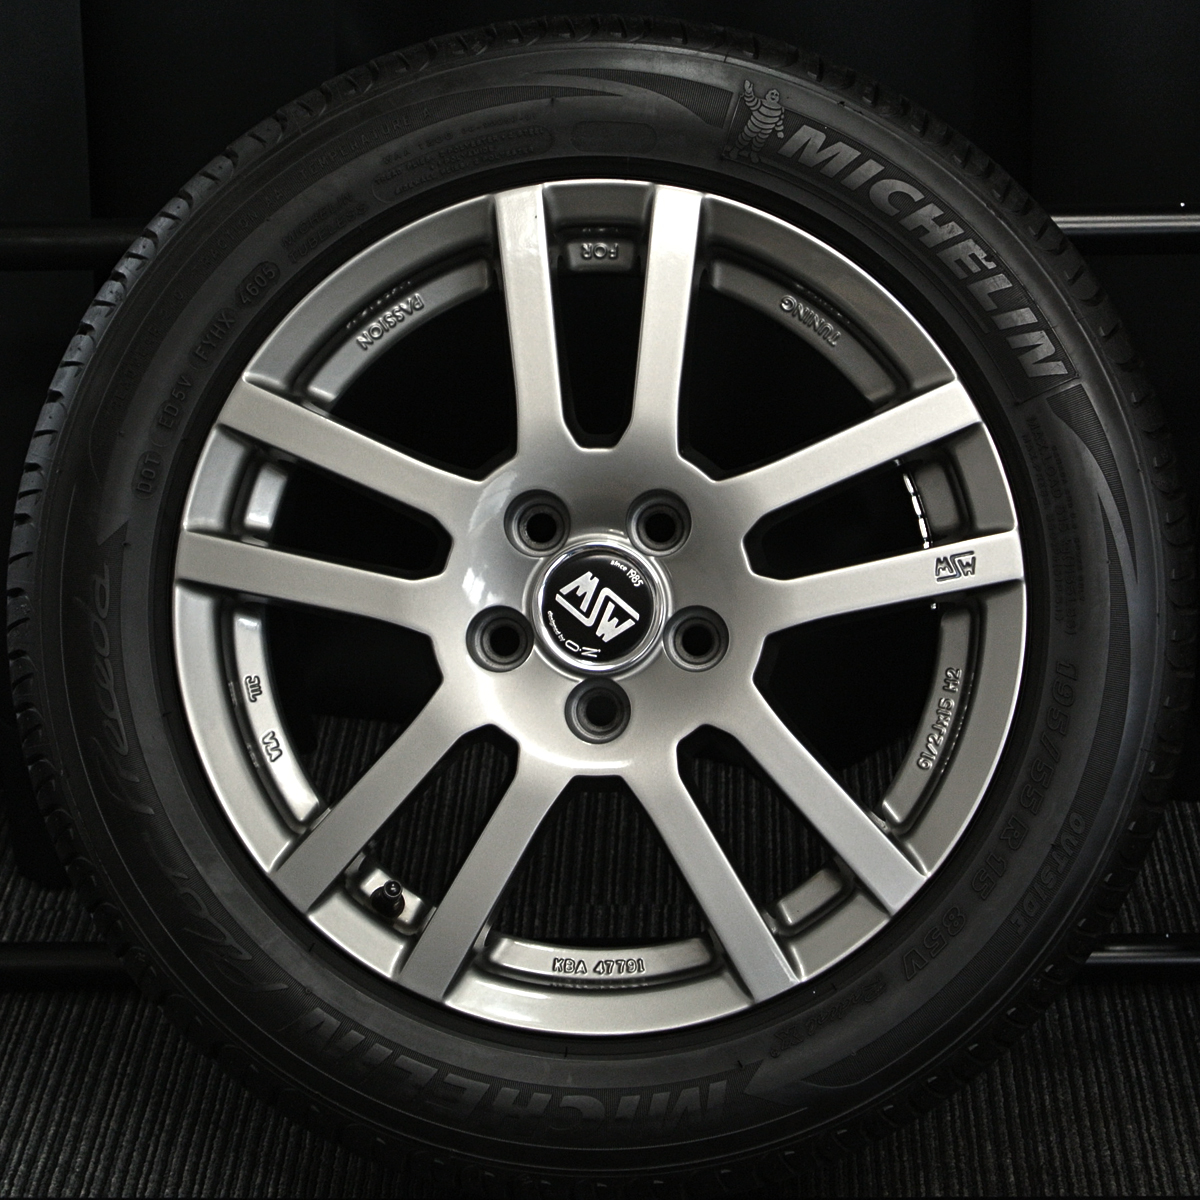 MSW designed by OZ MSW-22 ガンメタ MICHELIN Pilot Preceda 195/55R15 4本SET